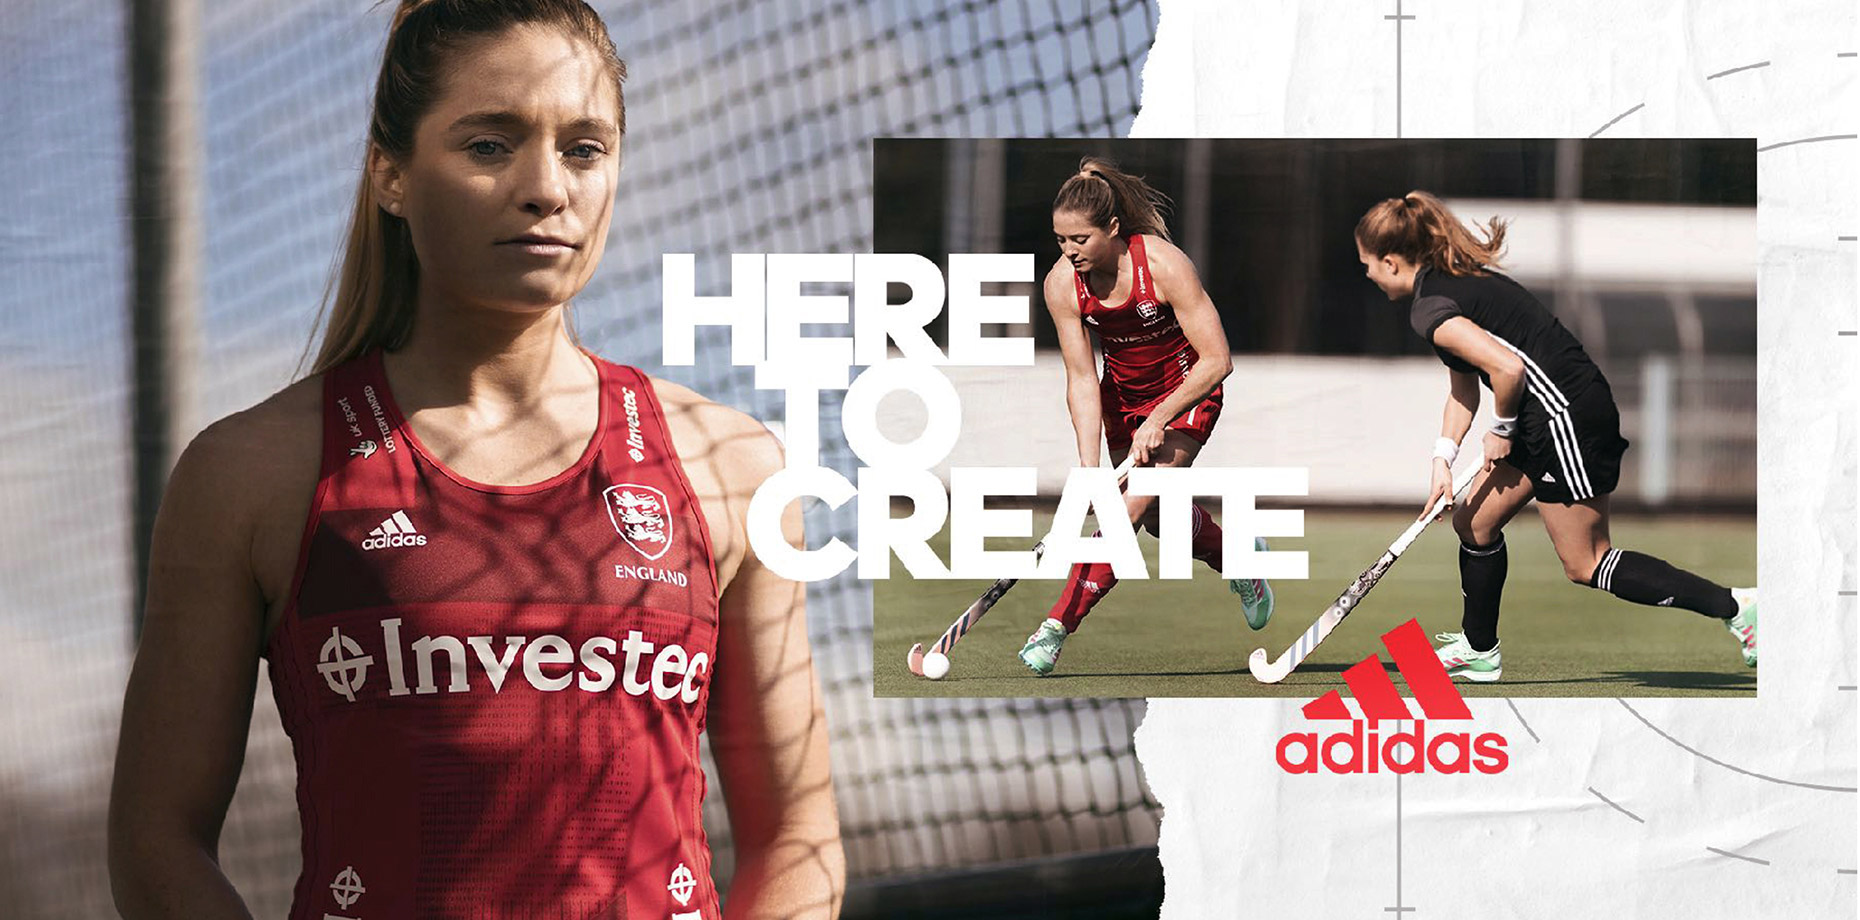 180704_adidas_FieldHockey_Overview